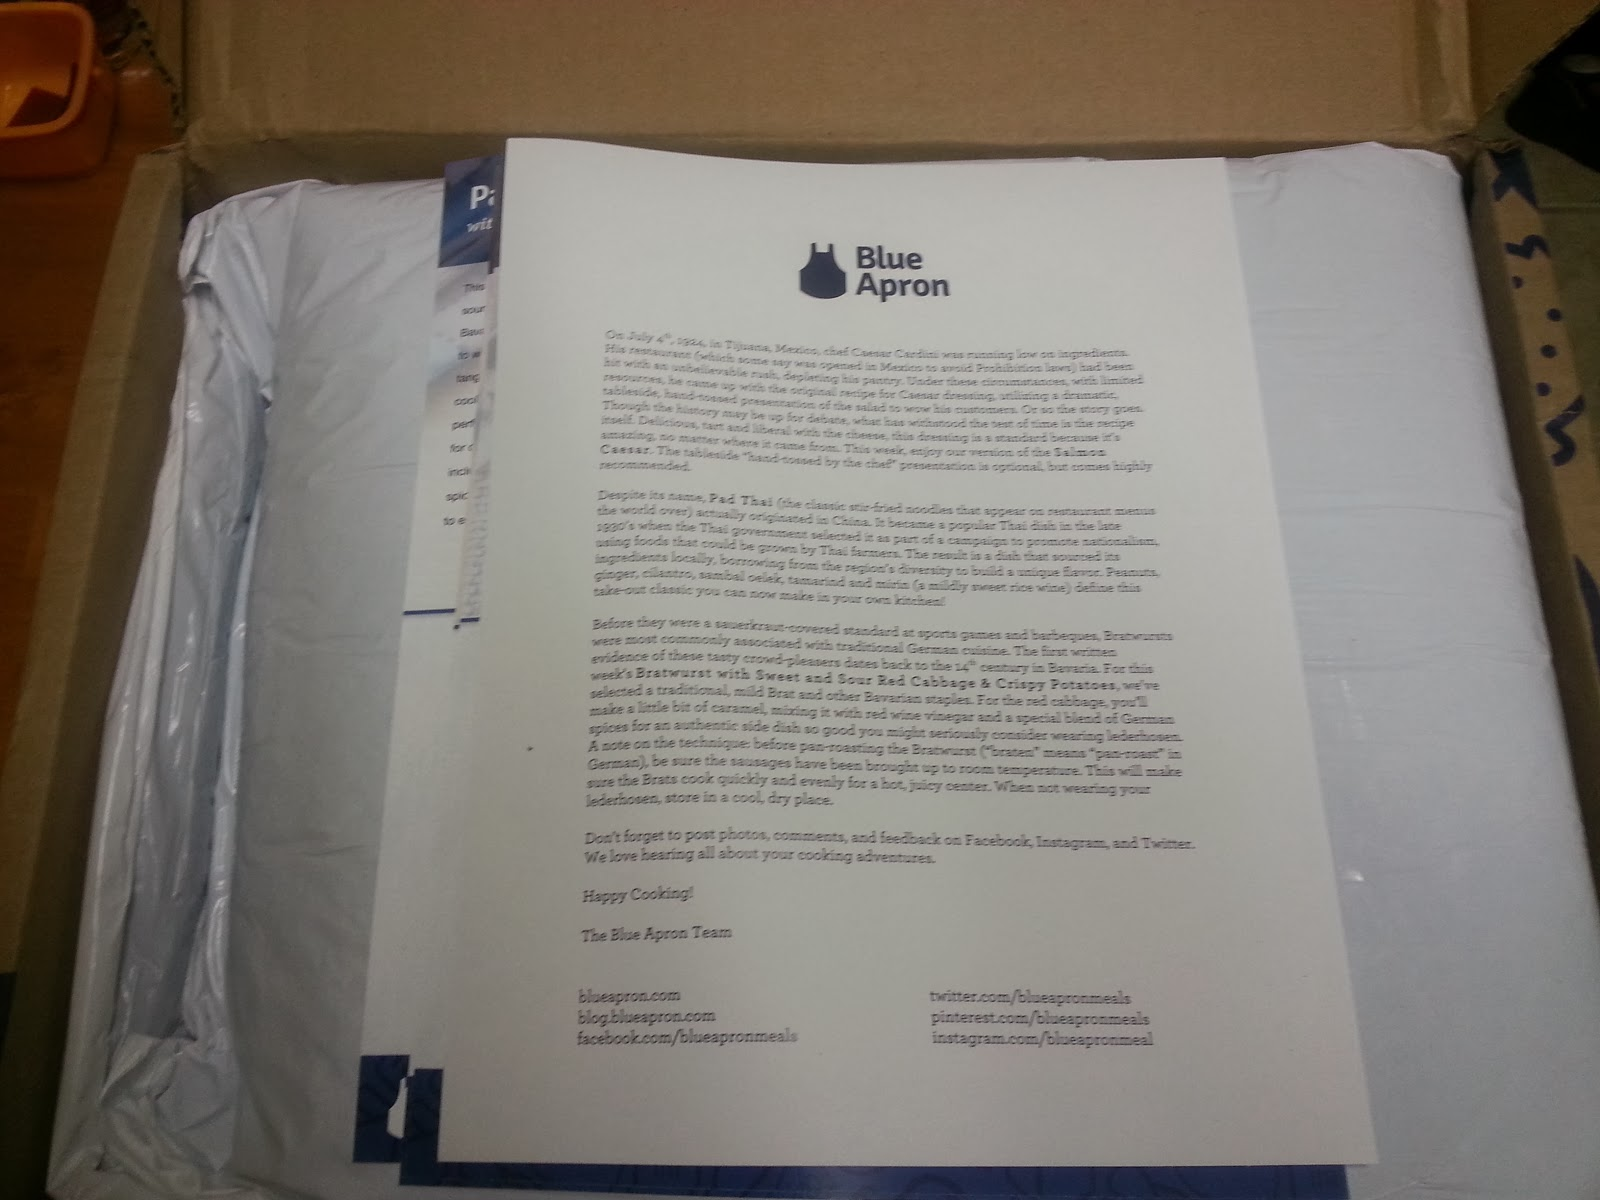 Blue apron kansas city